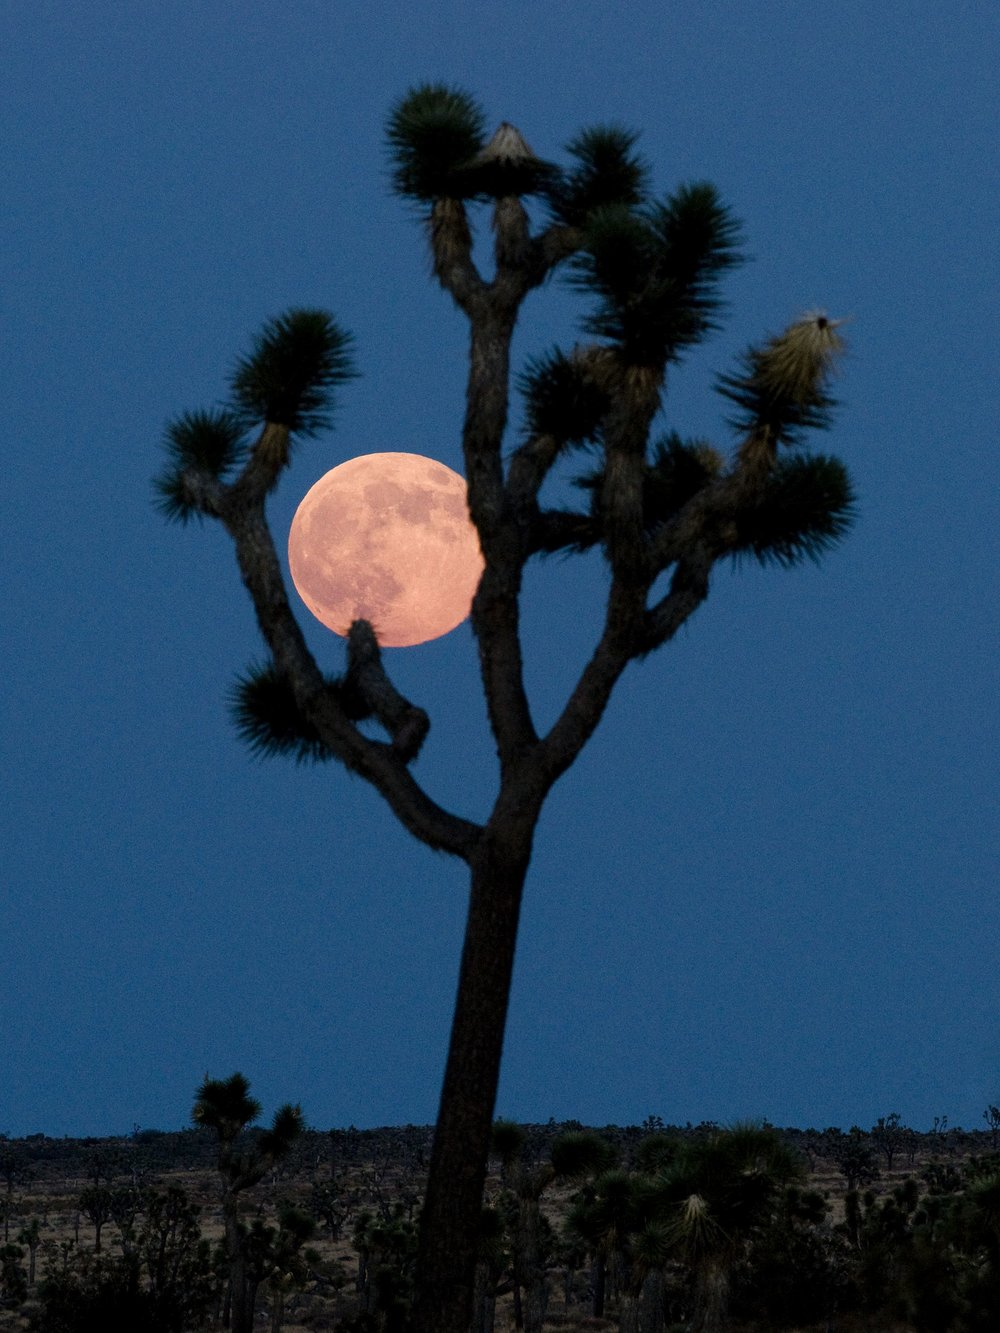 Supermoon rising over Queen Valley in Joshua Tree National Park; photo by NPS/Brad Sutton [CC BY 2.0 (http://creativecommons.org/licenses/by/2.0)], via Wikimedia Commons